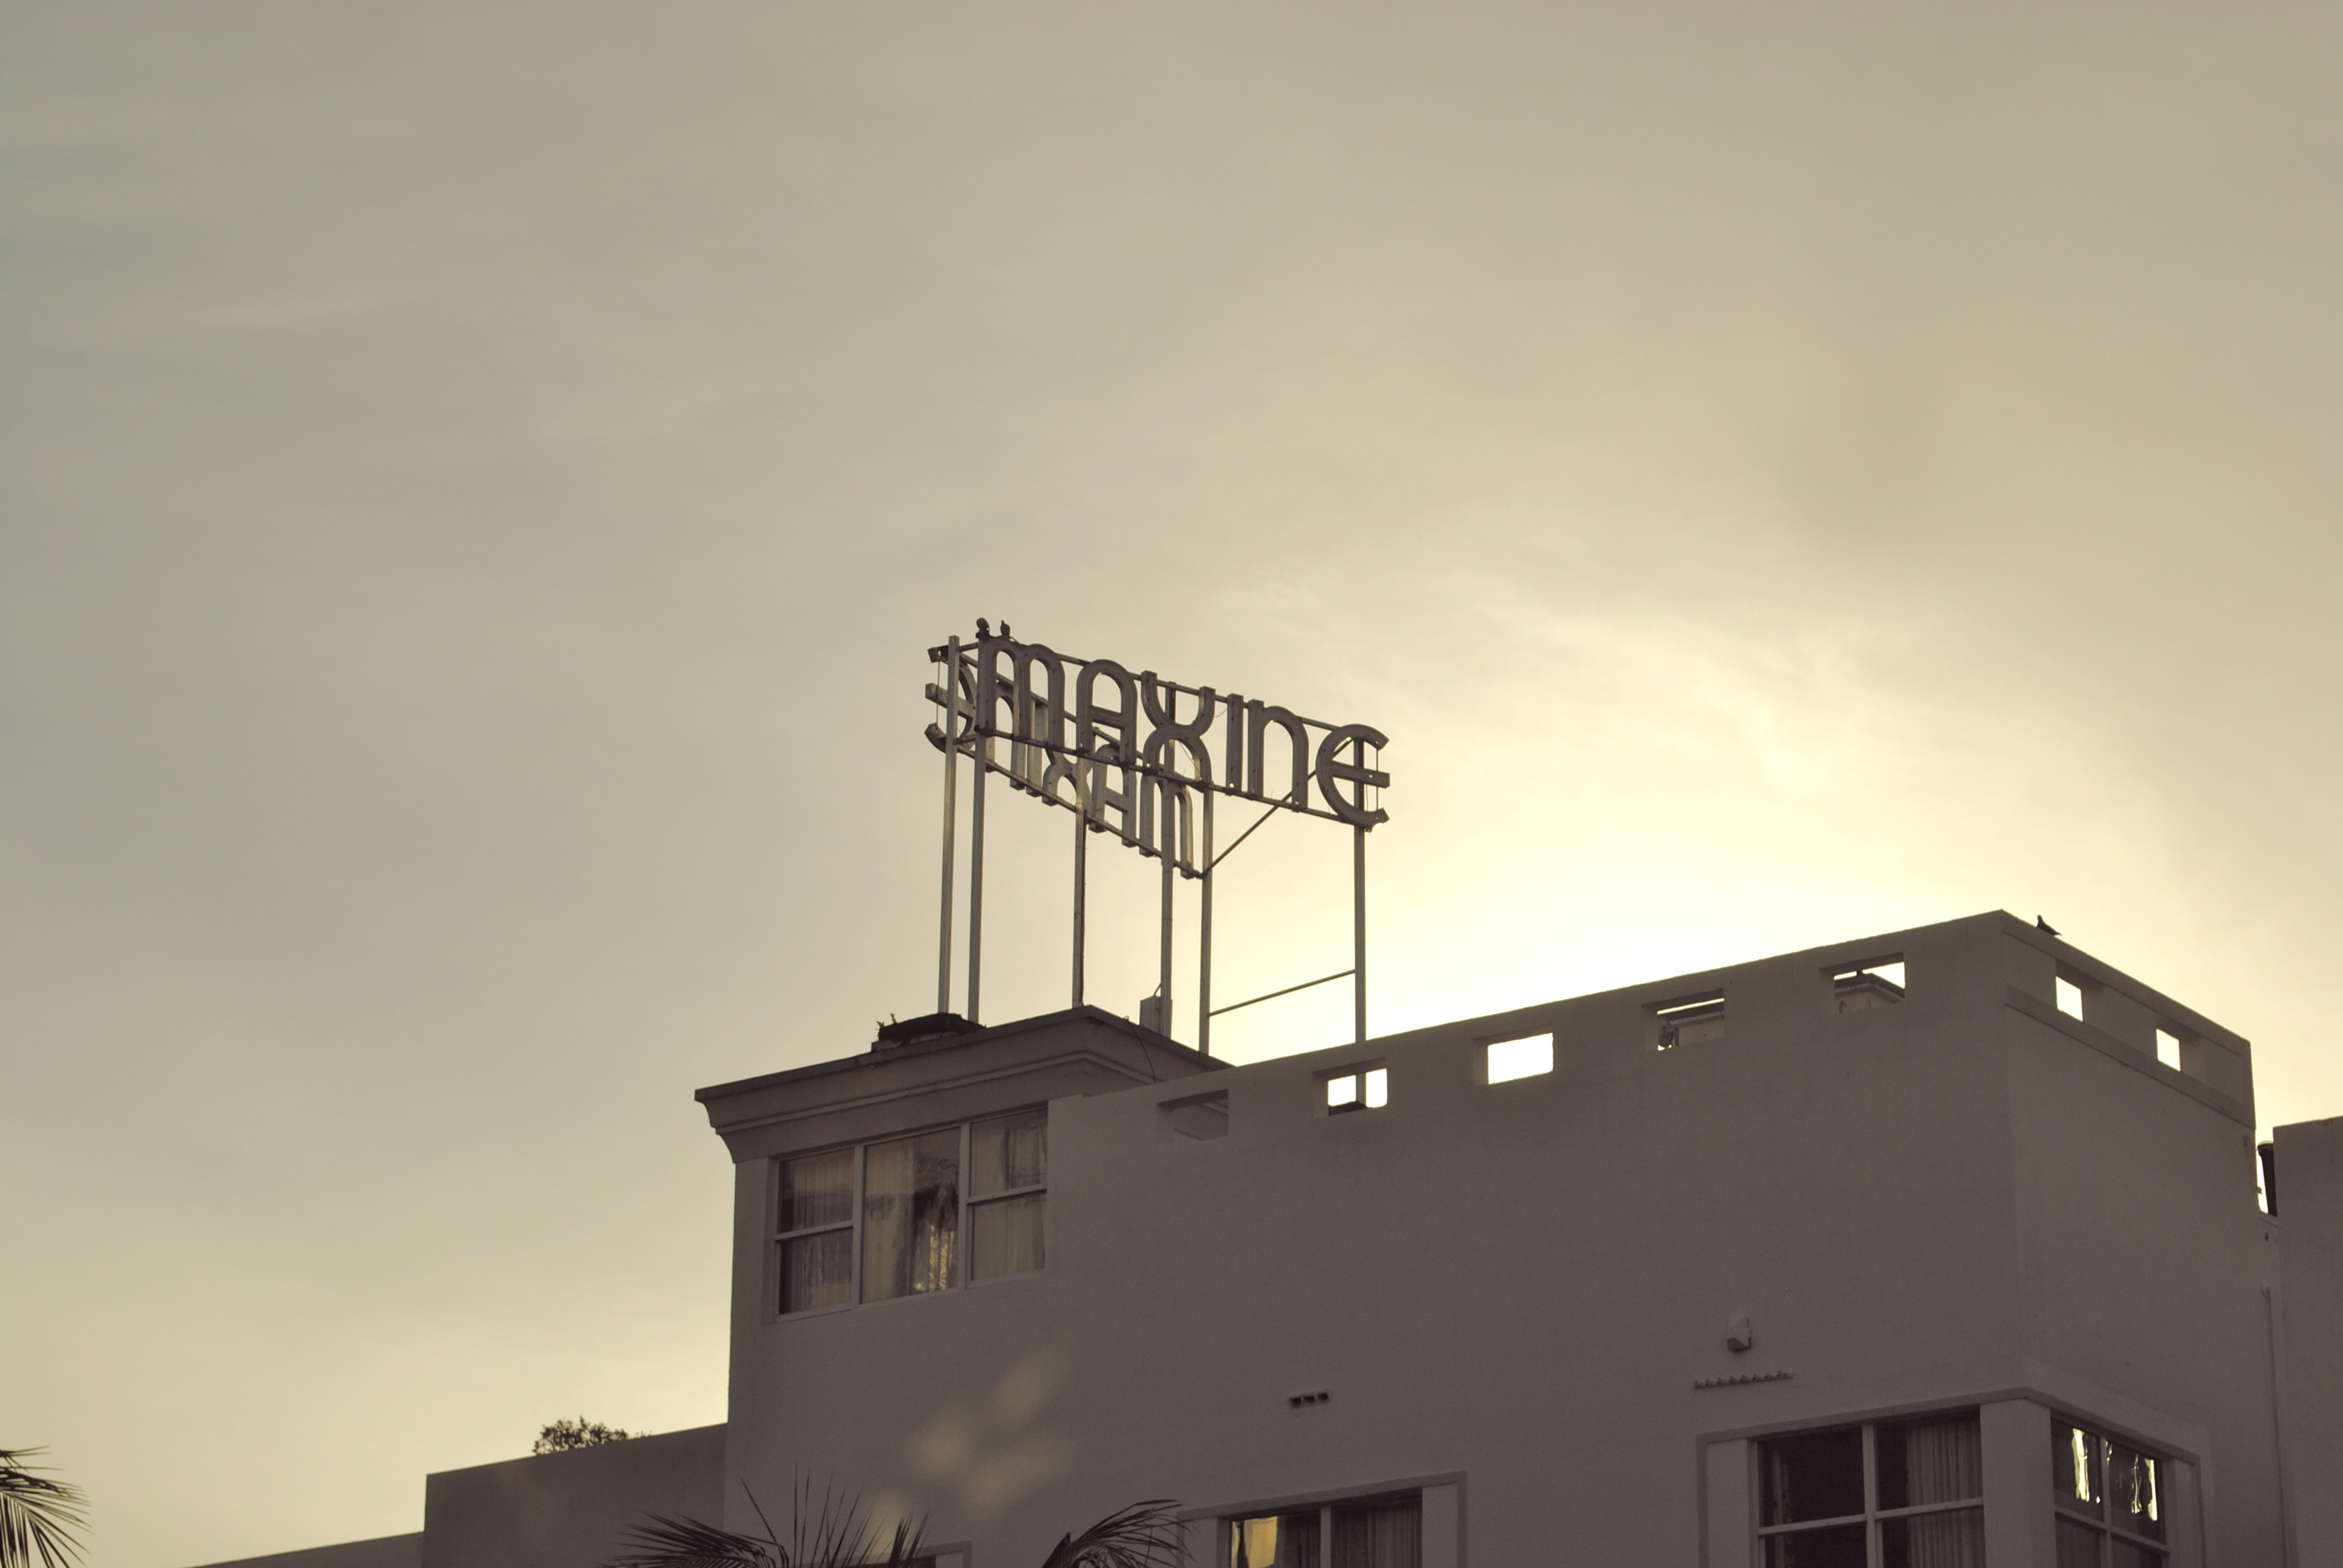 """The sign reads """"MAXINE"""" is seen on top of a building."""